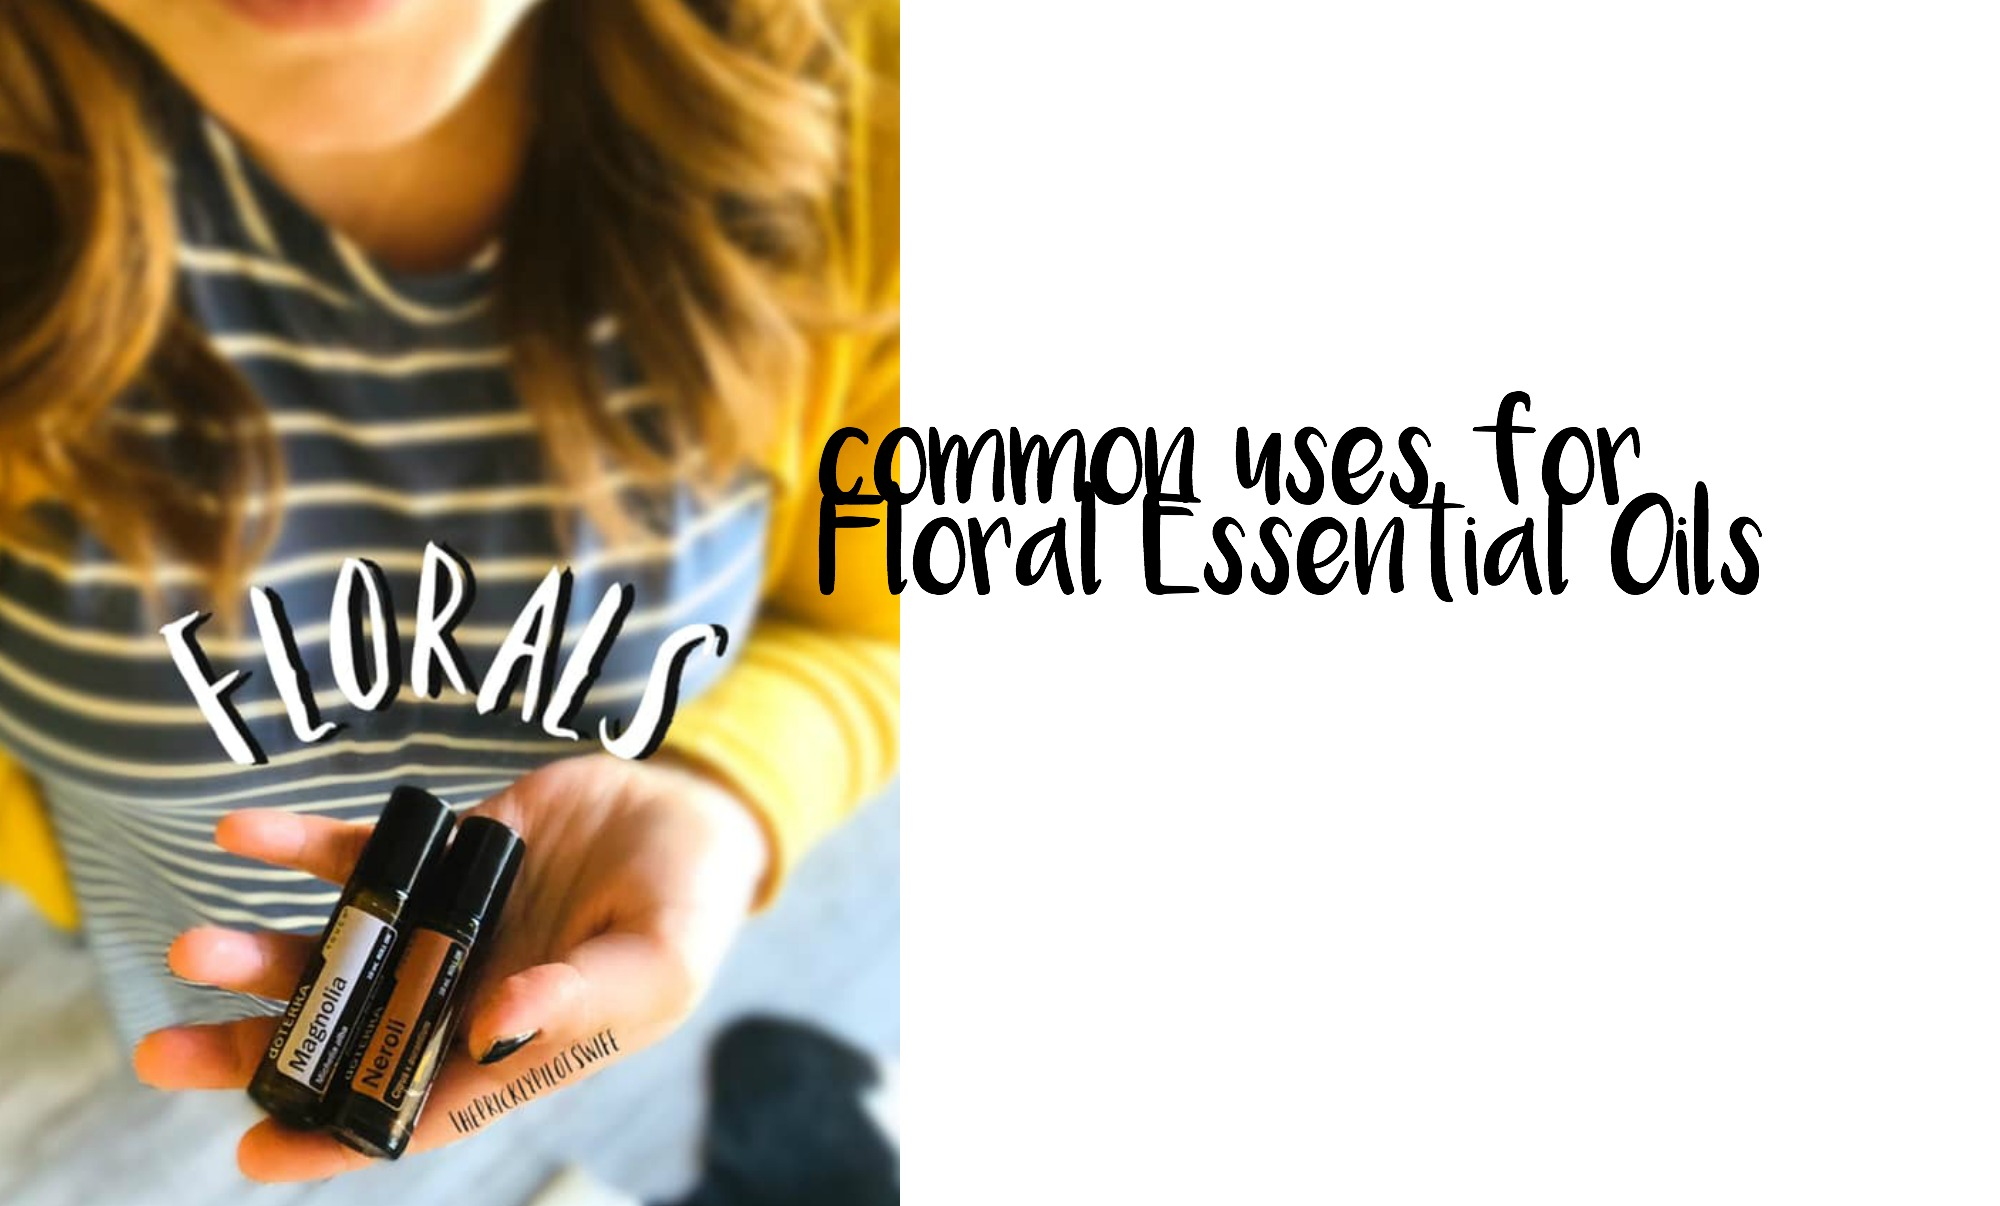 Uses for Floral Essential Oils - The Prickly Pilot's Wife